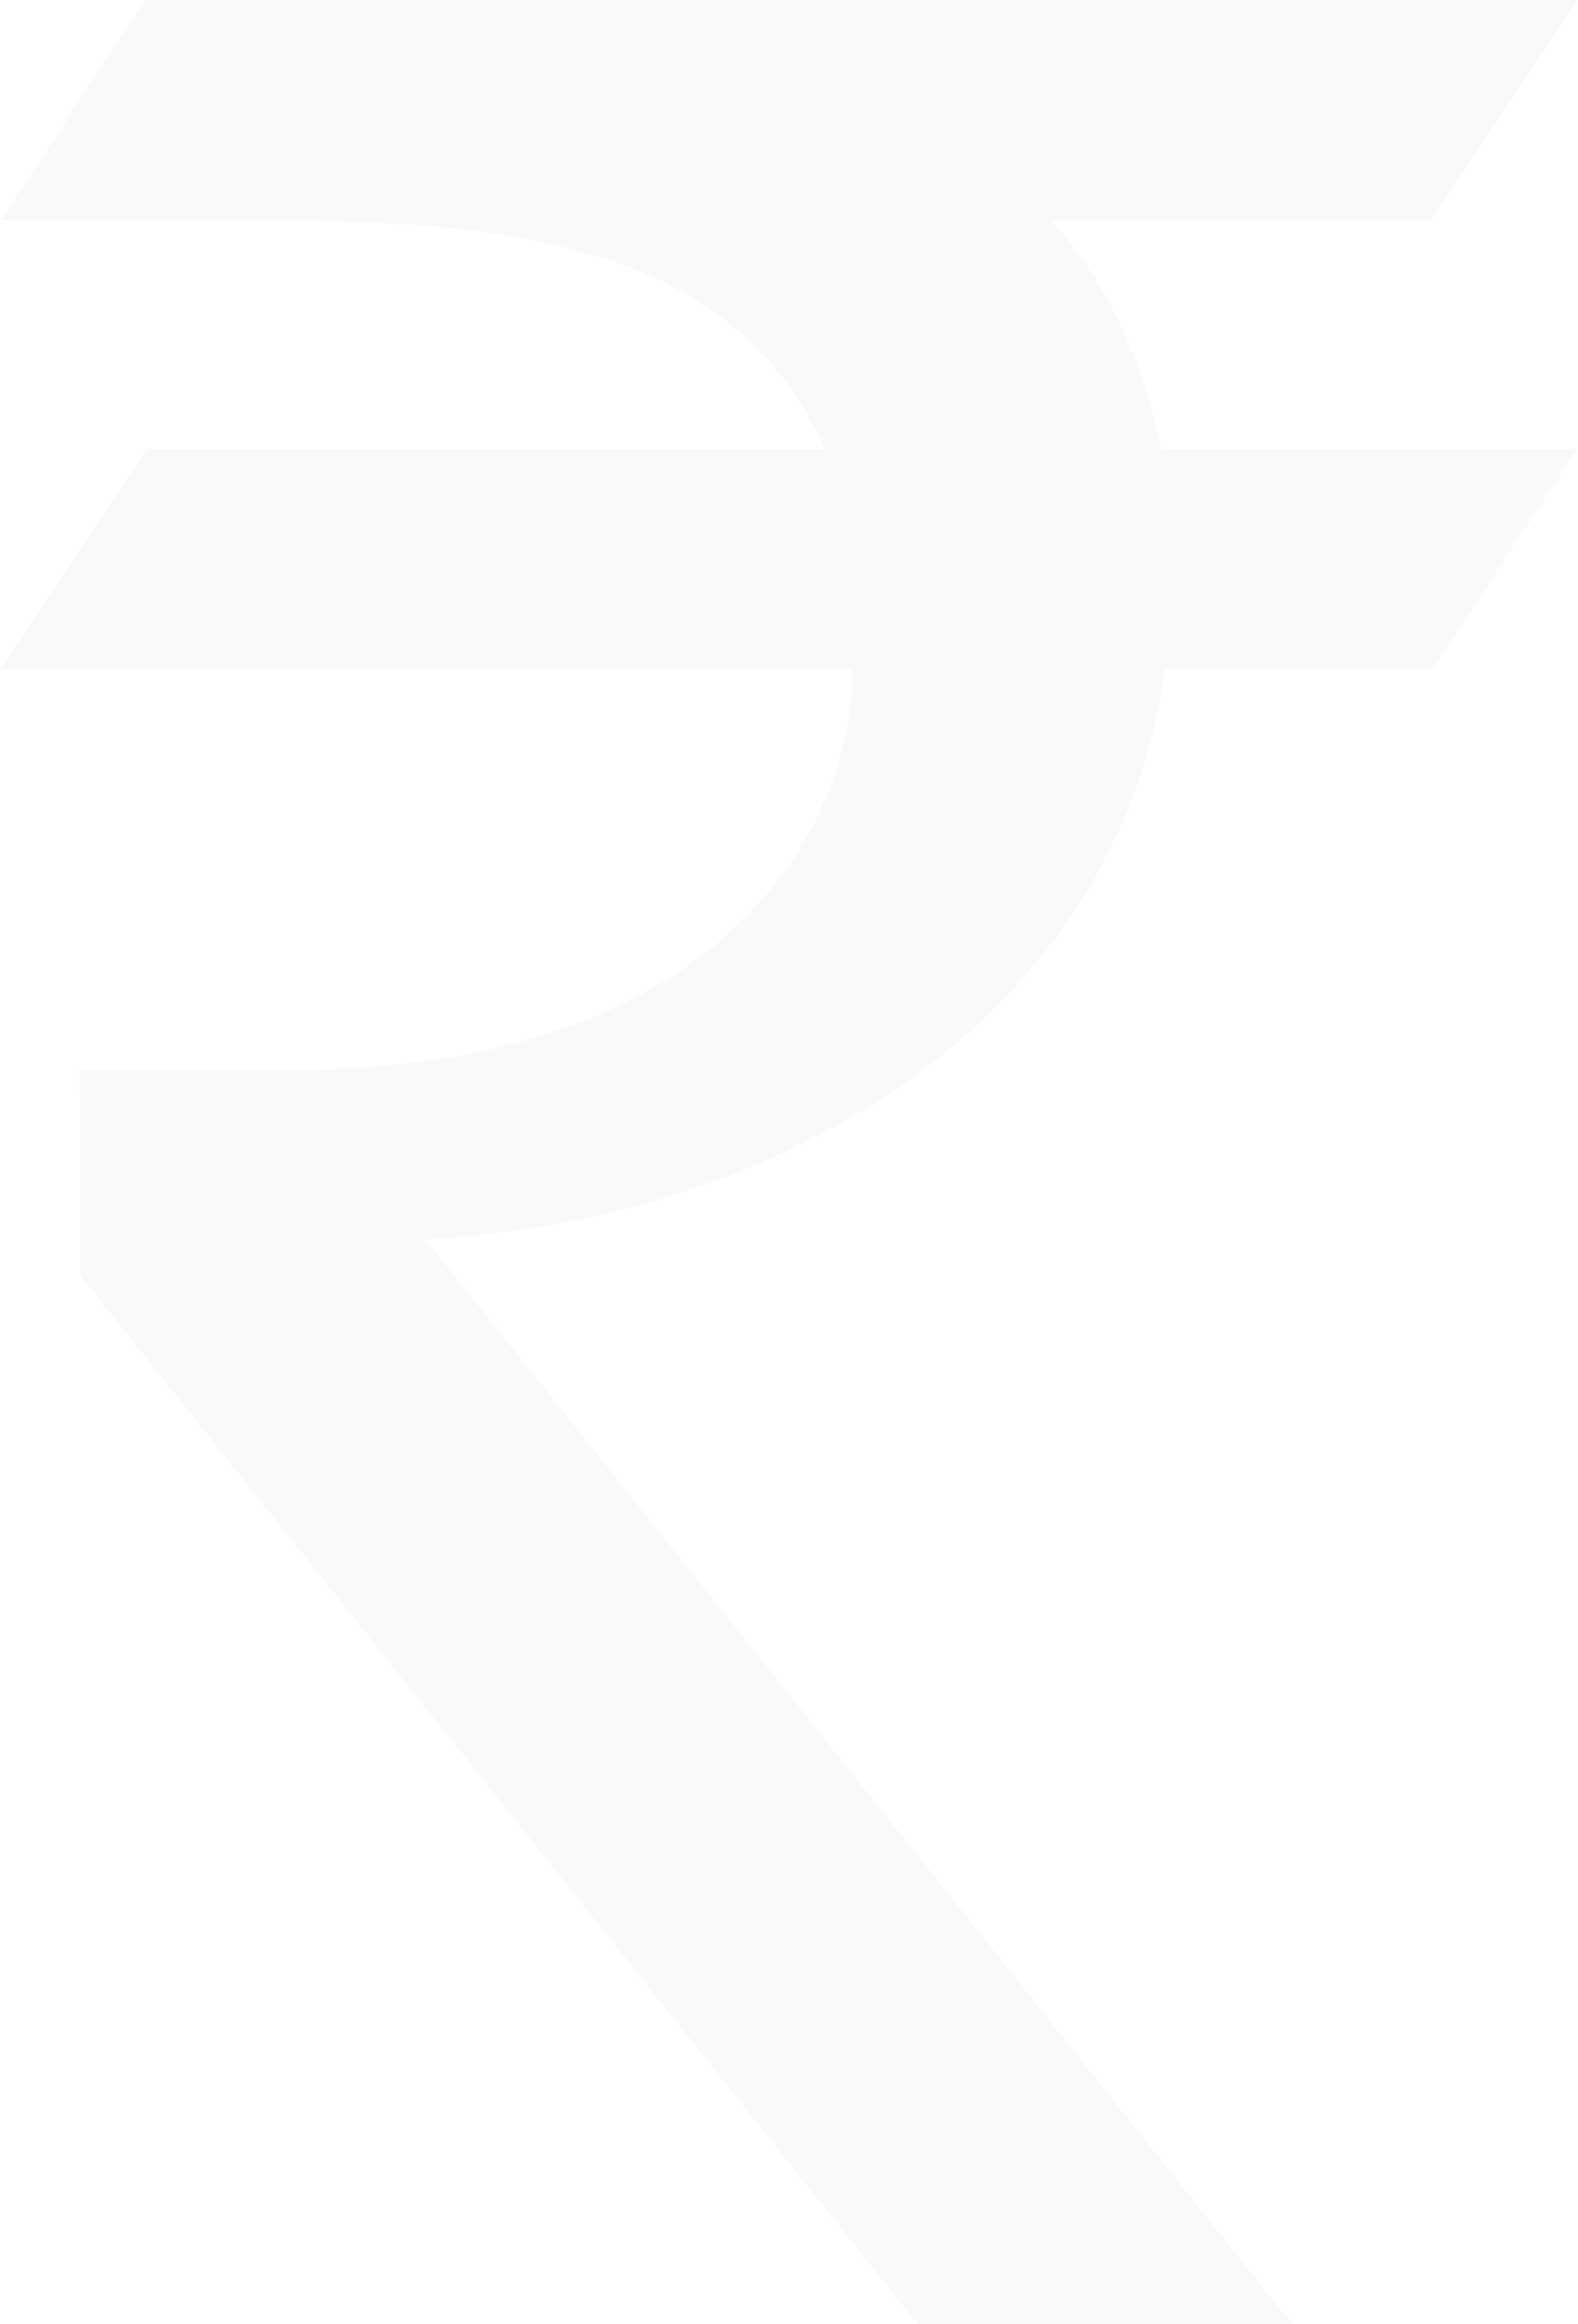 Environment in court weekly. R clipart rupee symbol